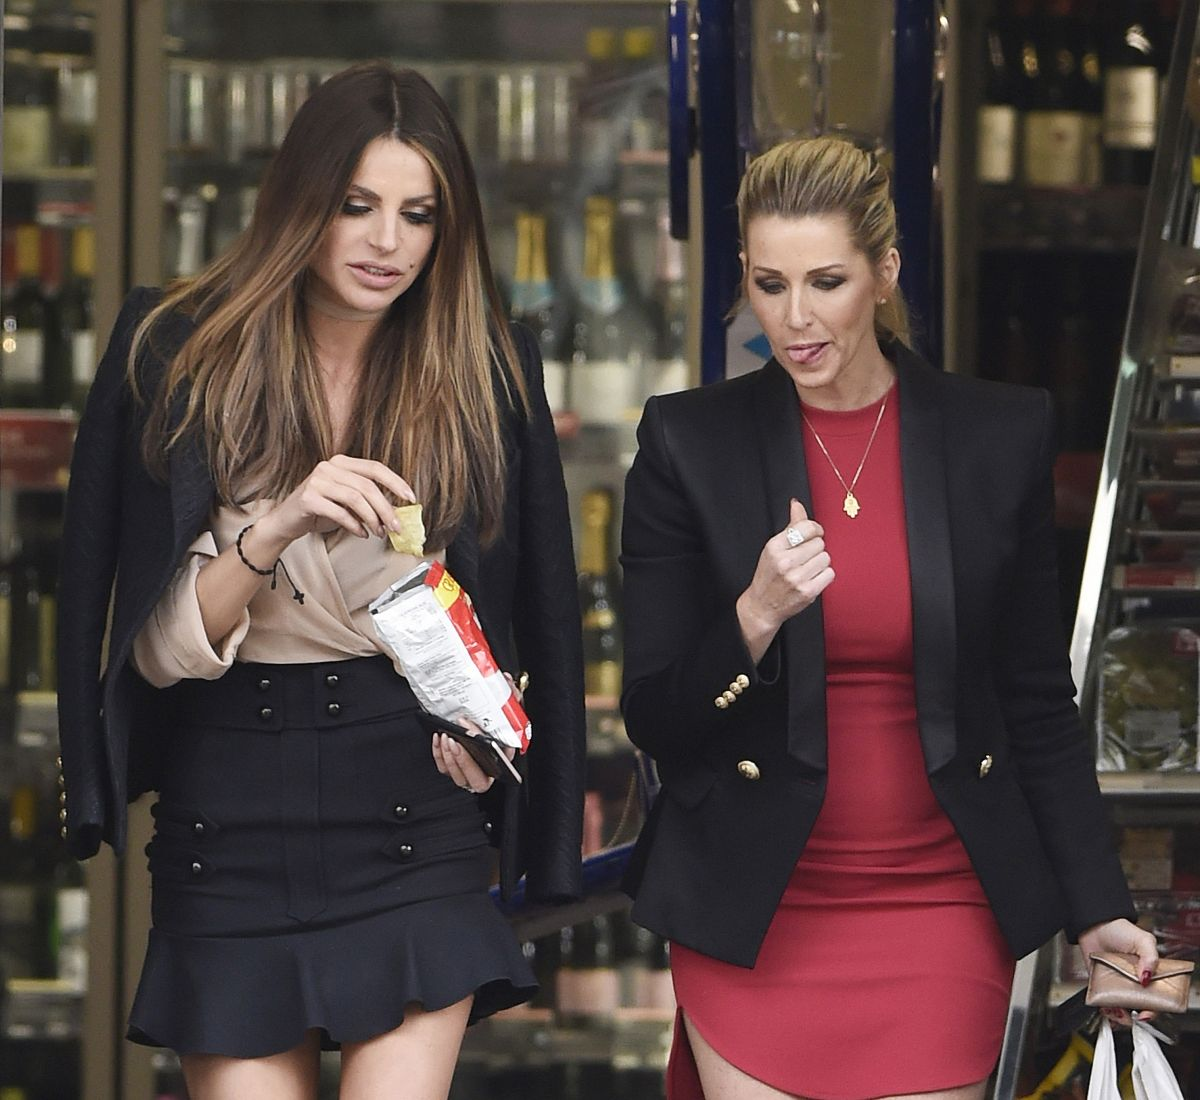 MISSE BEQIRI and LEANNE BROWN Out in Wilmslow 04/25/2016